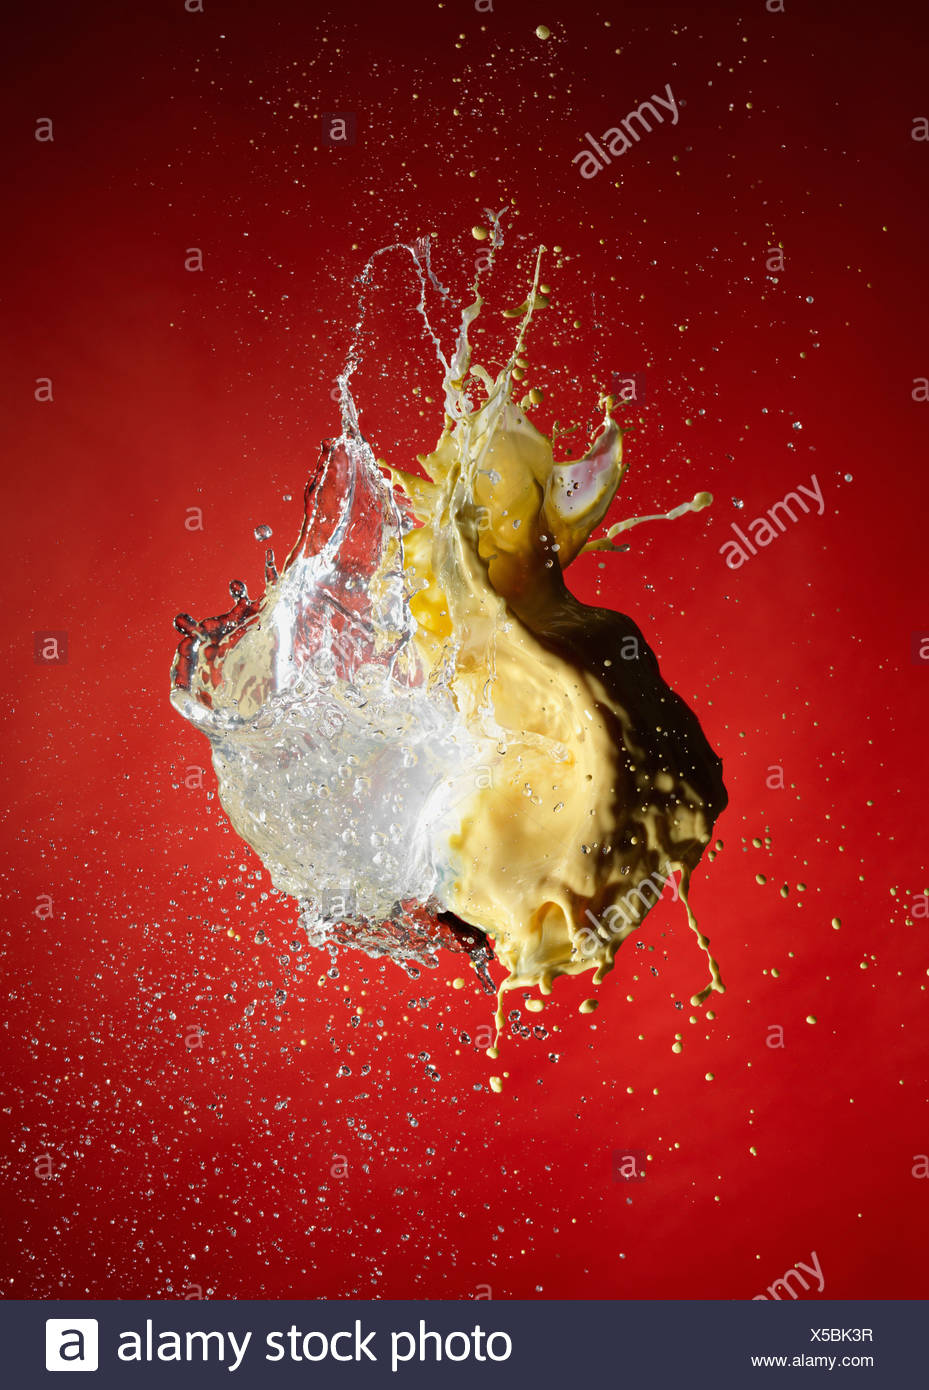 Close up de la peinture et de l'eau explosion Photo Stock